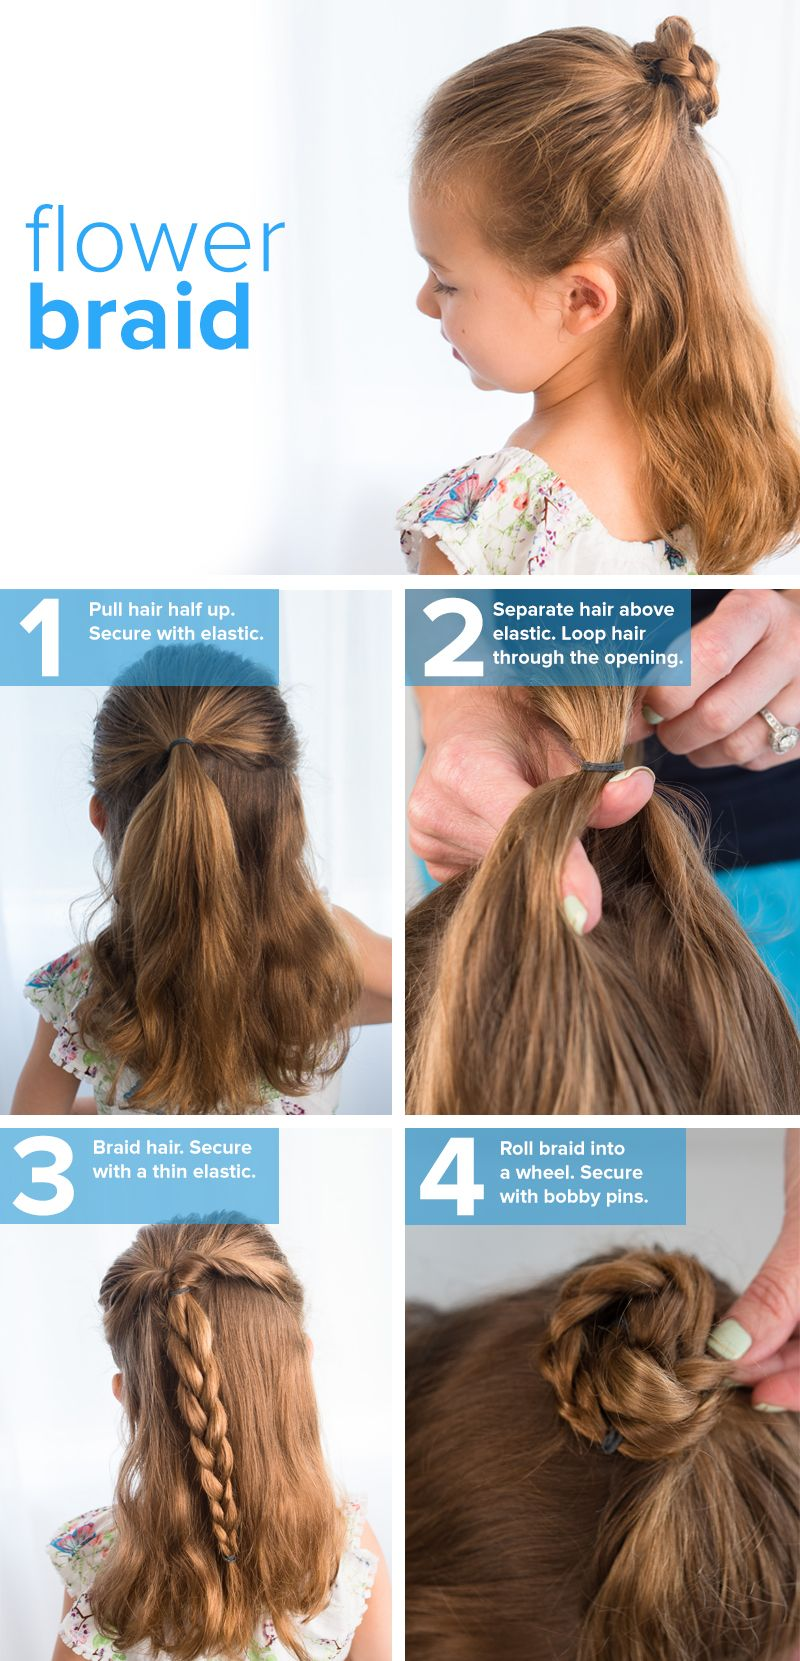 10 easy back-to school hairstyles for girls  Hair styles, Cute